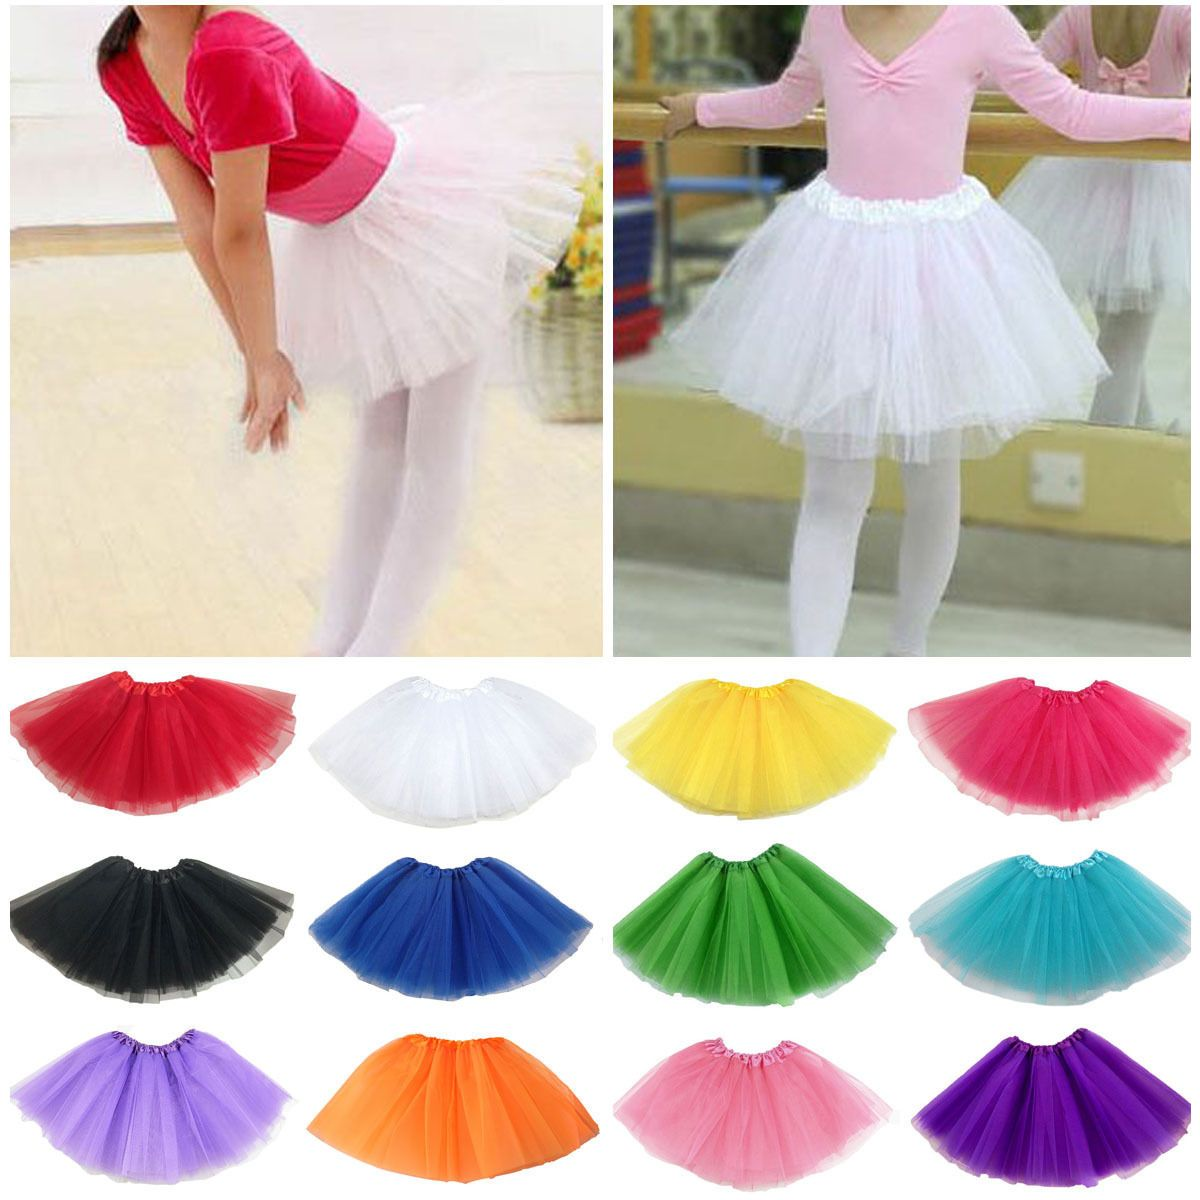 44f549a19b Ballet Tutu Princess Dress Up Dance Wear Costume Party Girls Toddler Kids  Skirt